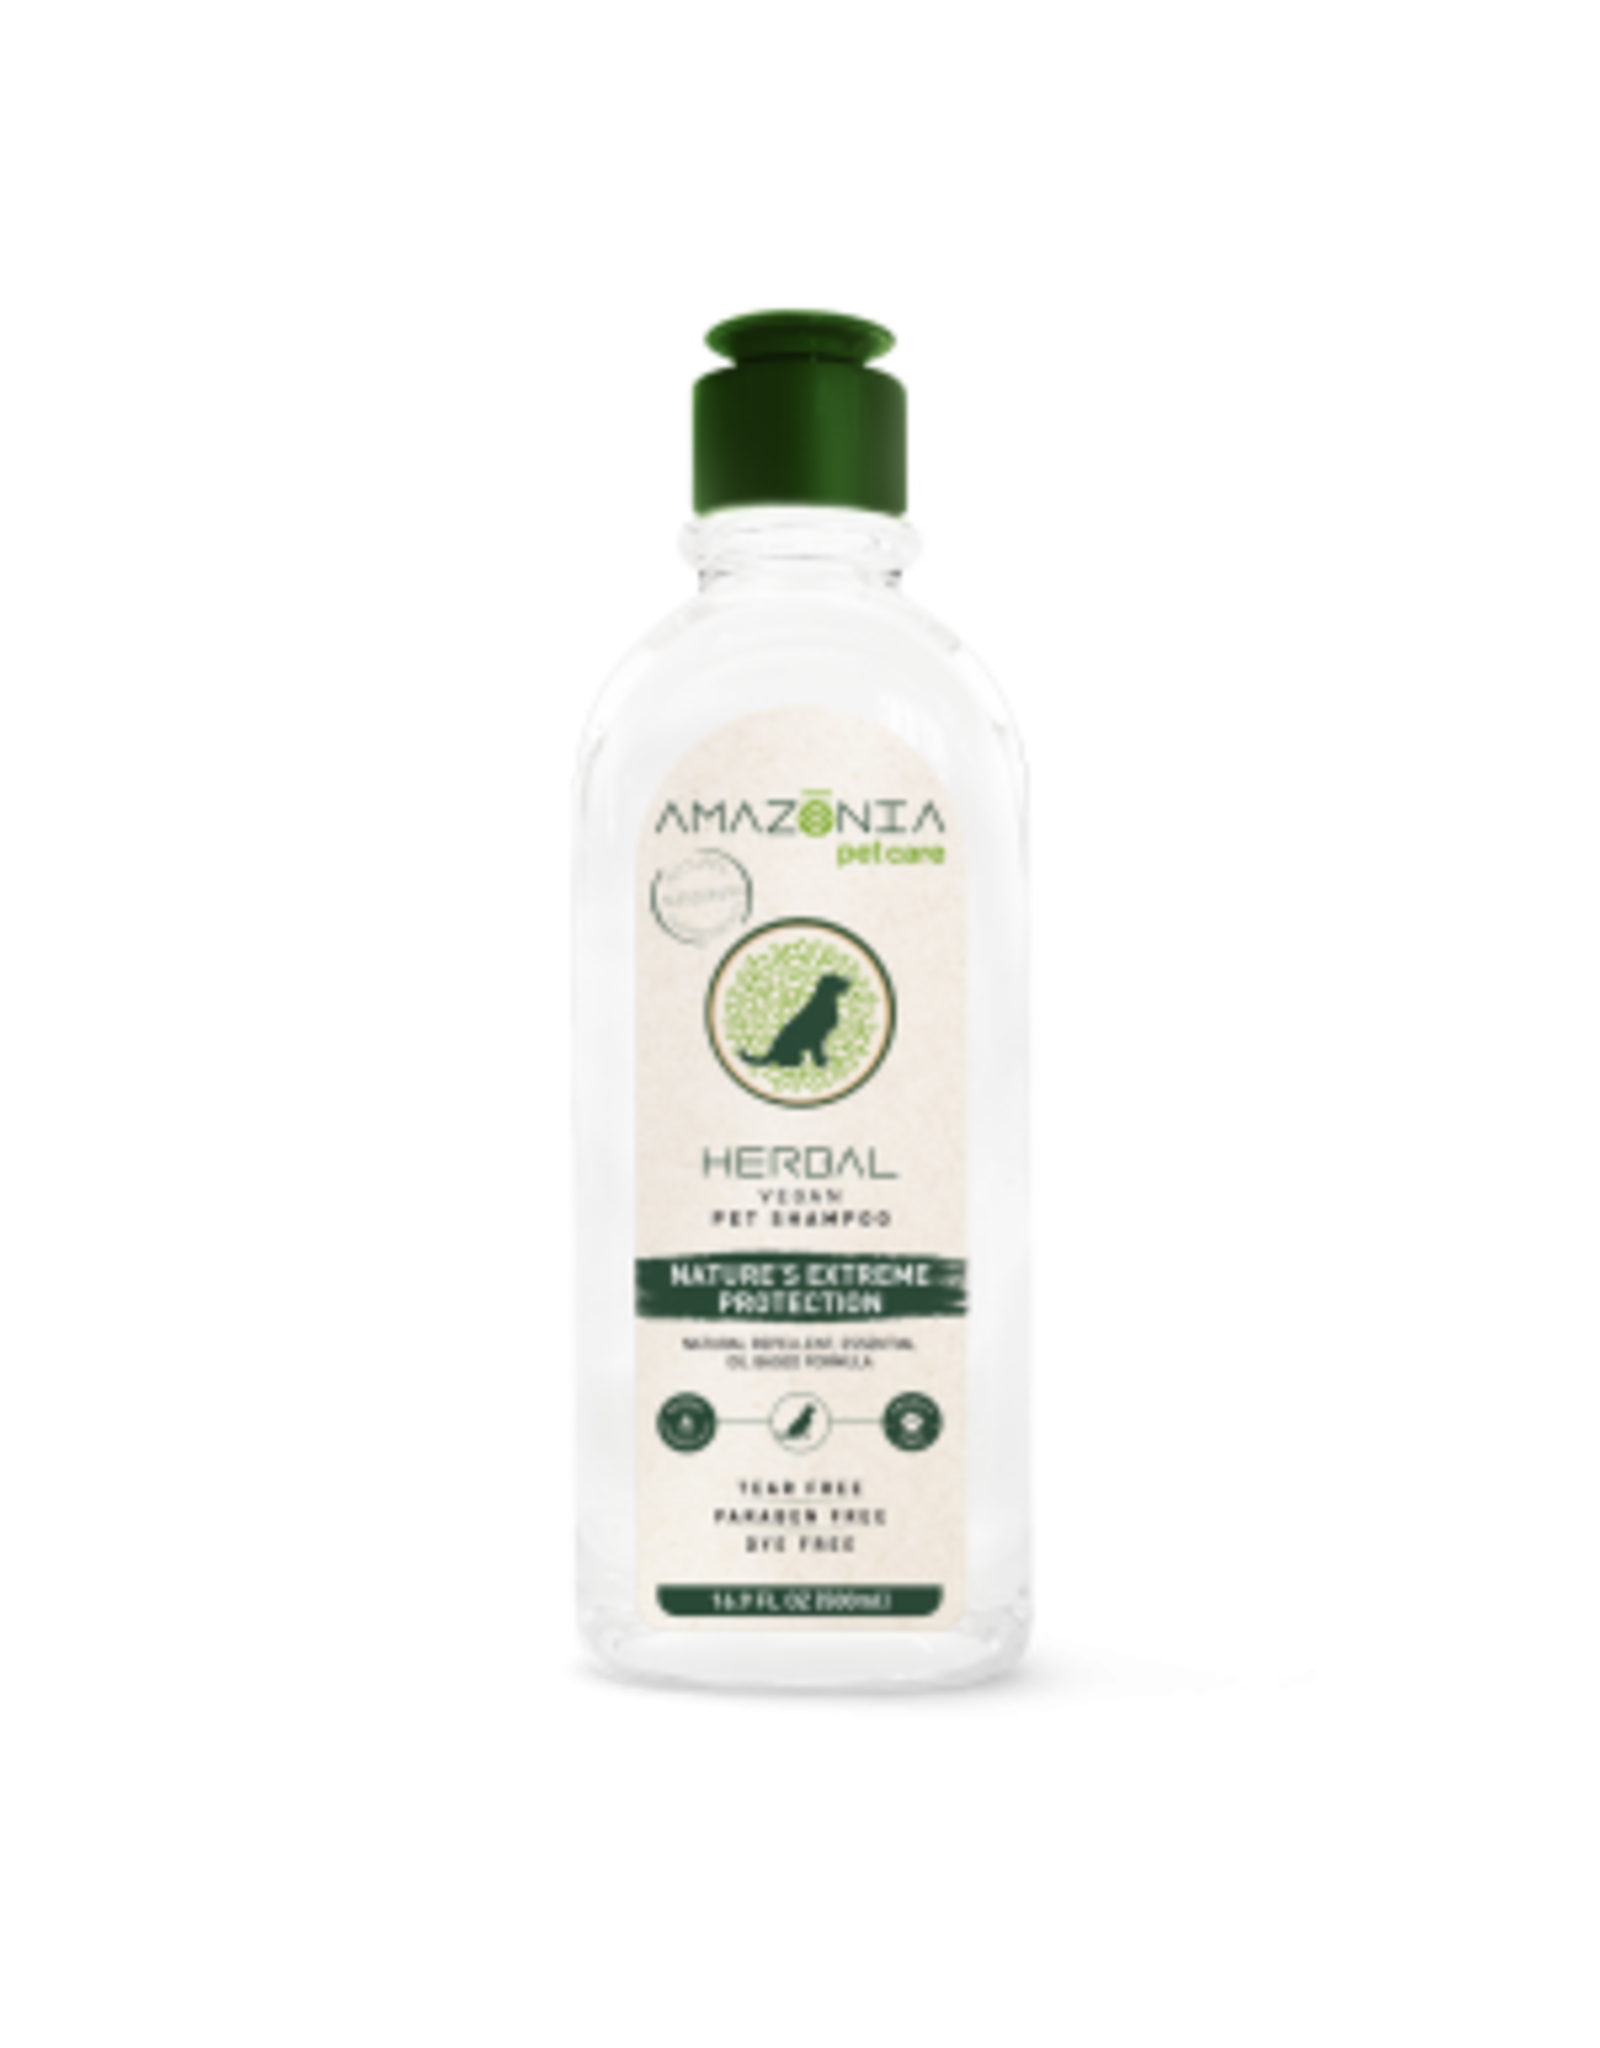 Amazonia Amazonia chien & chat Shampoing herbal, protection aux herbes, 16.9 oz